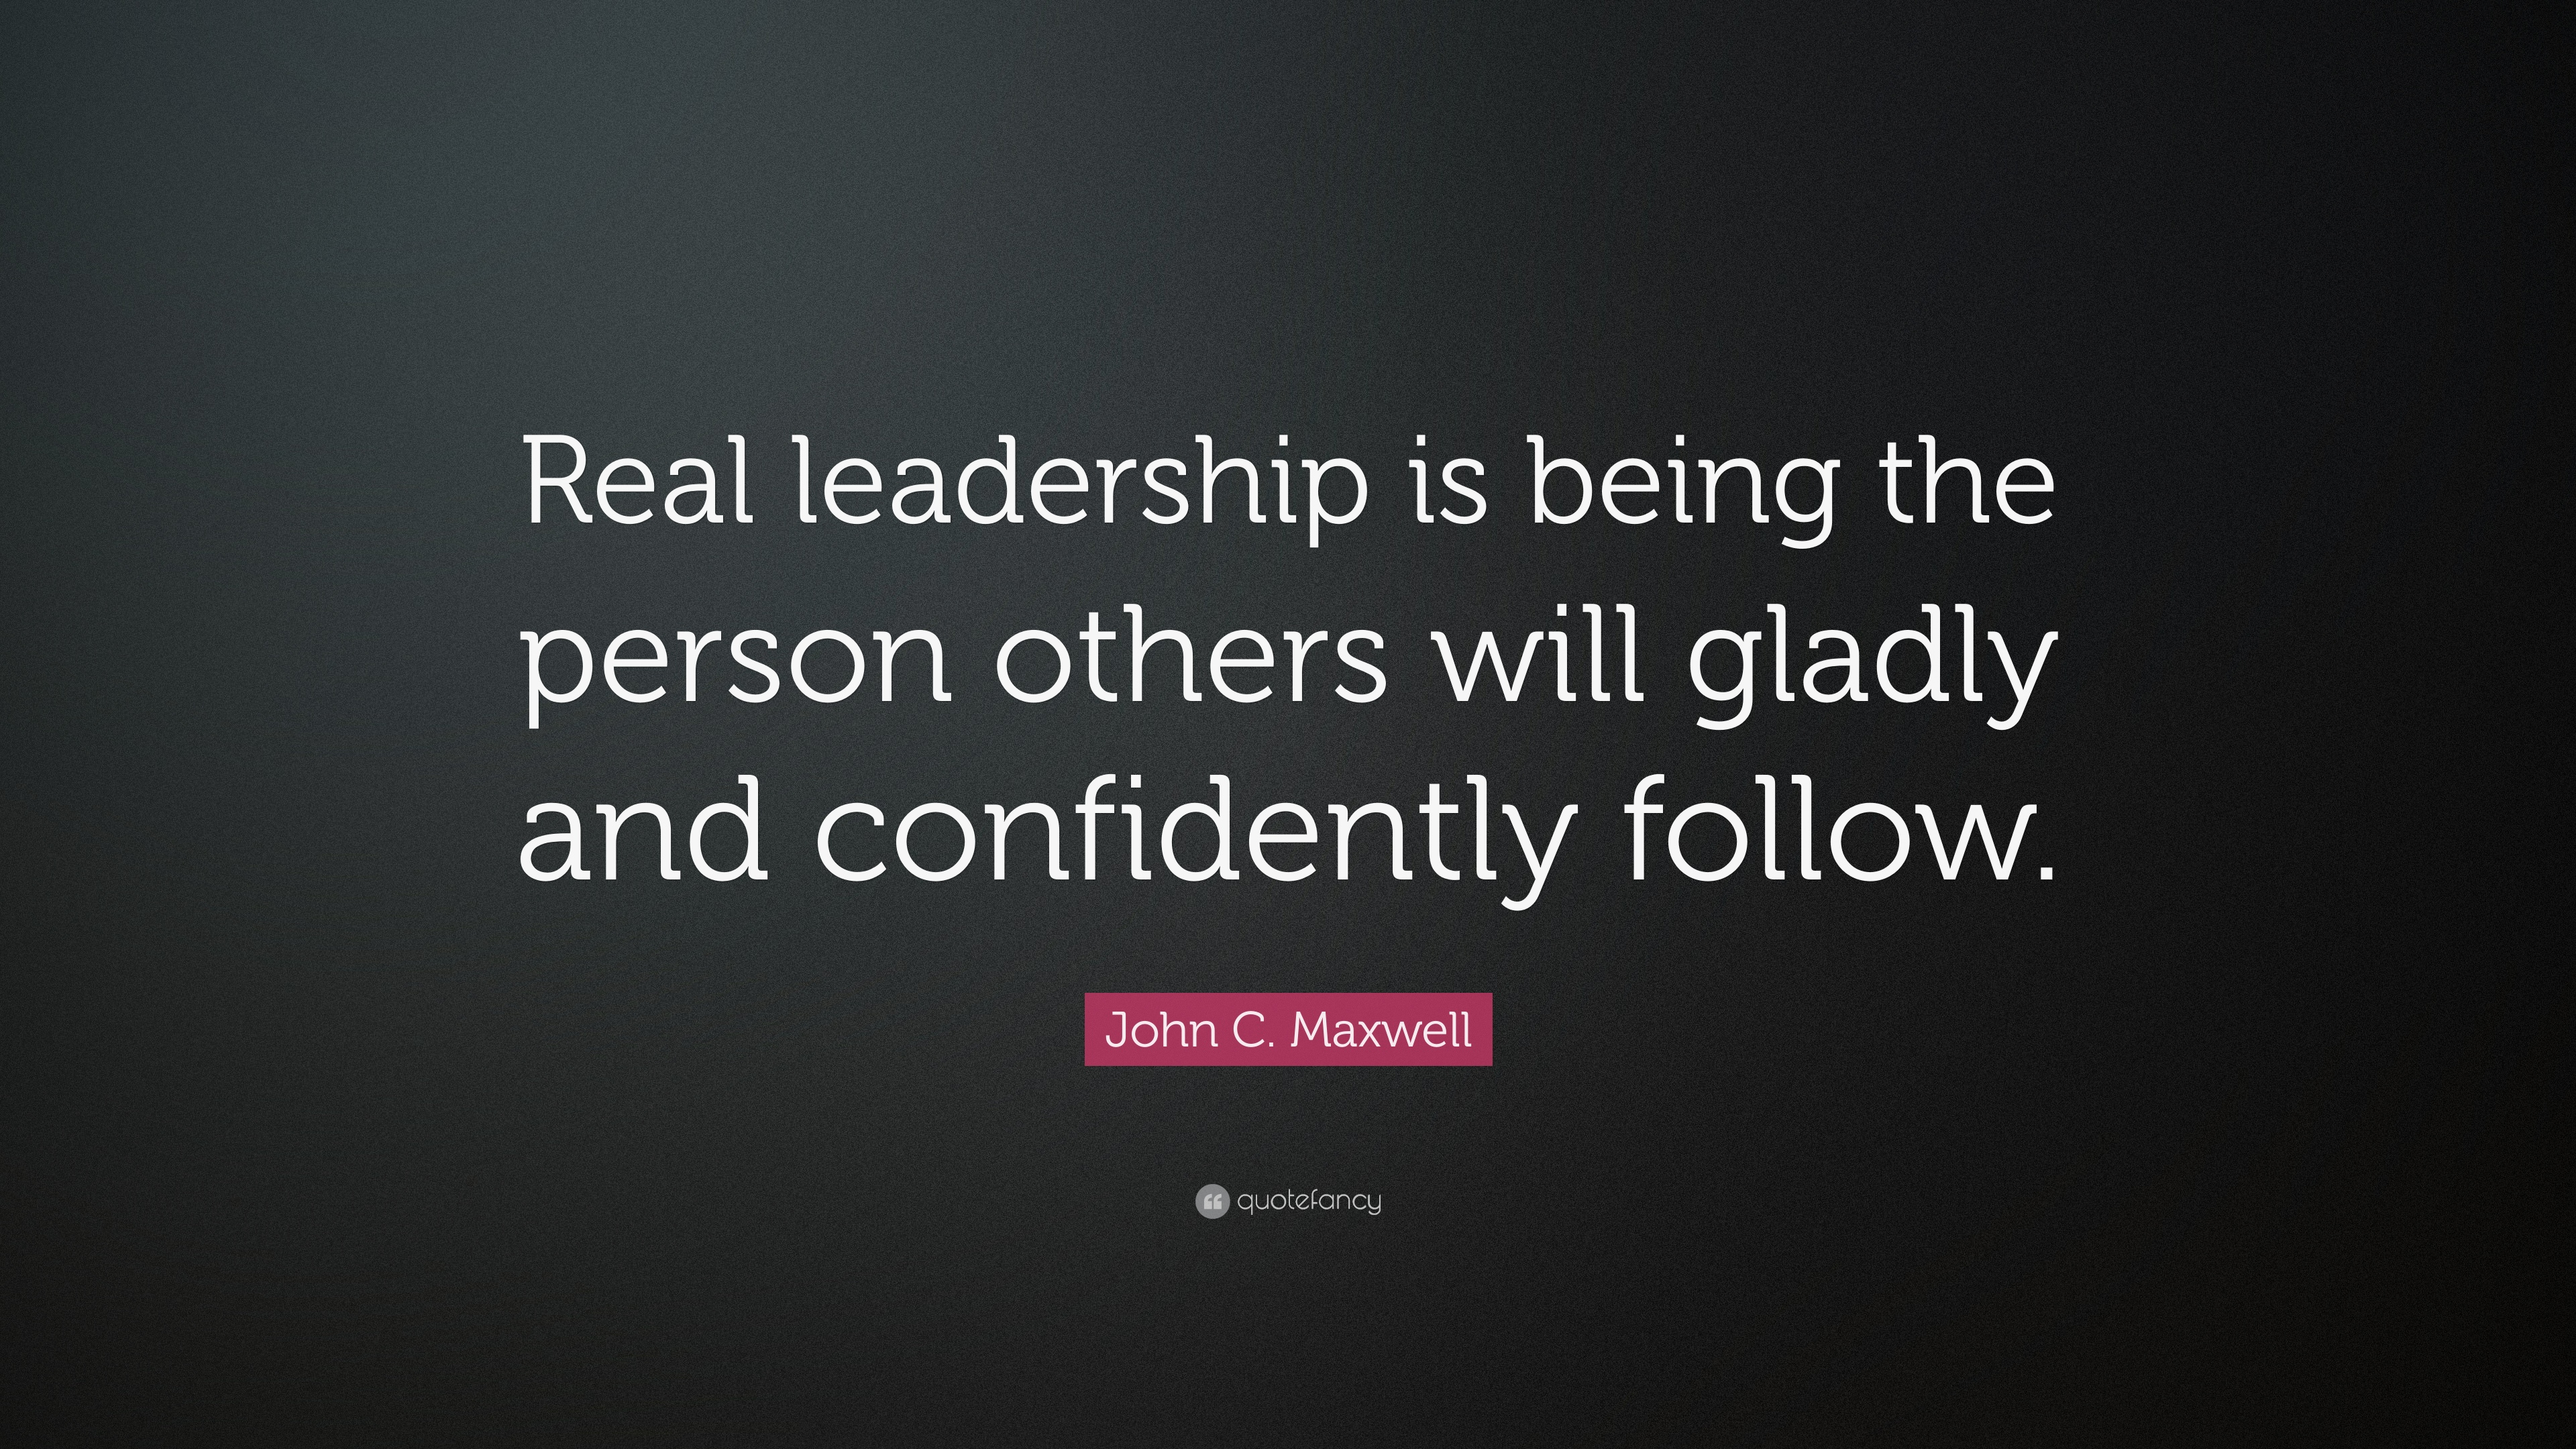 john c  maxwell quote   u201creal leadership is being the